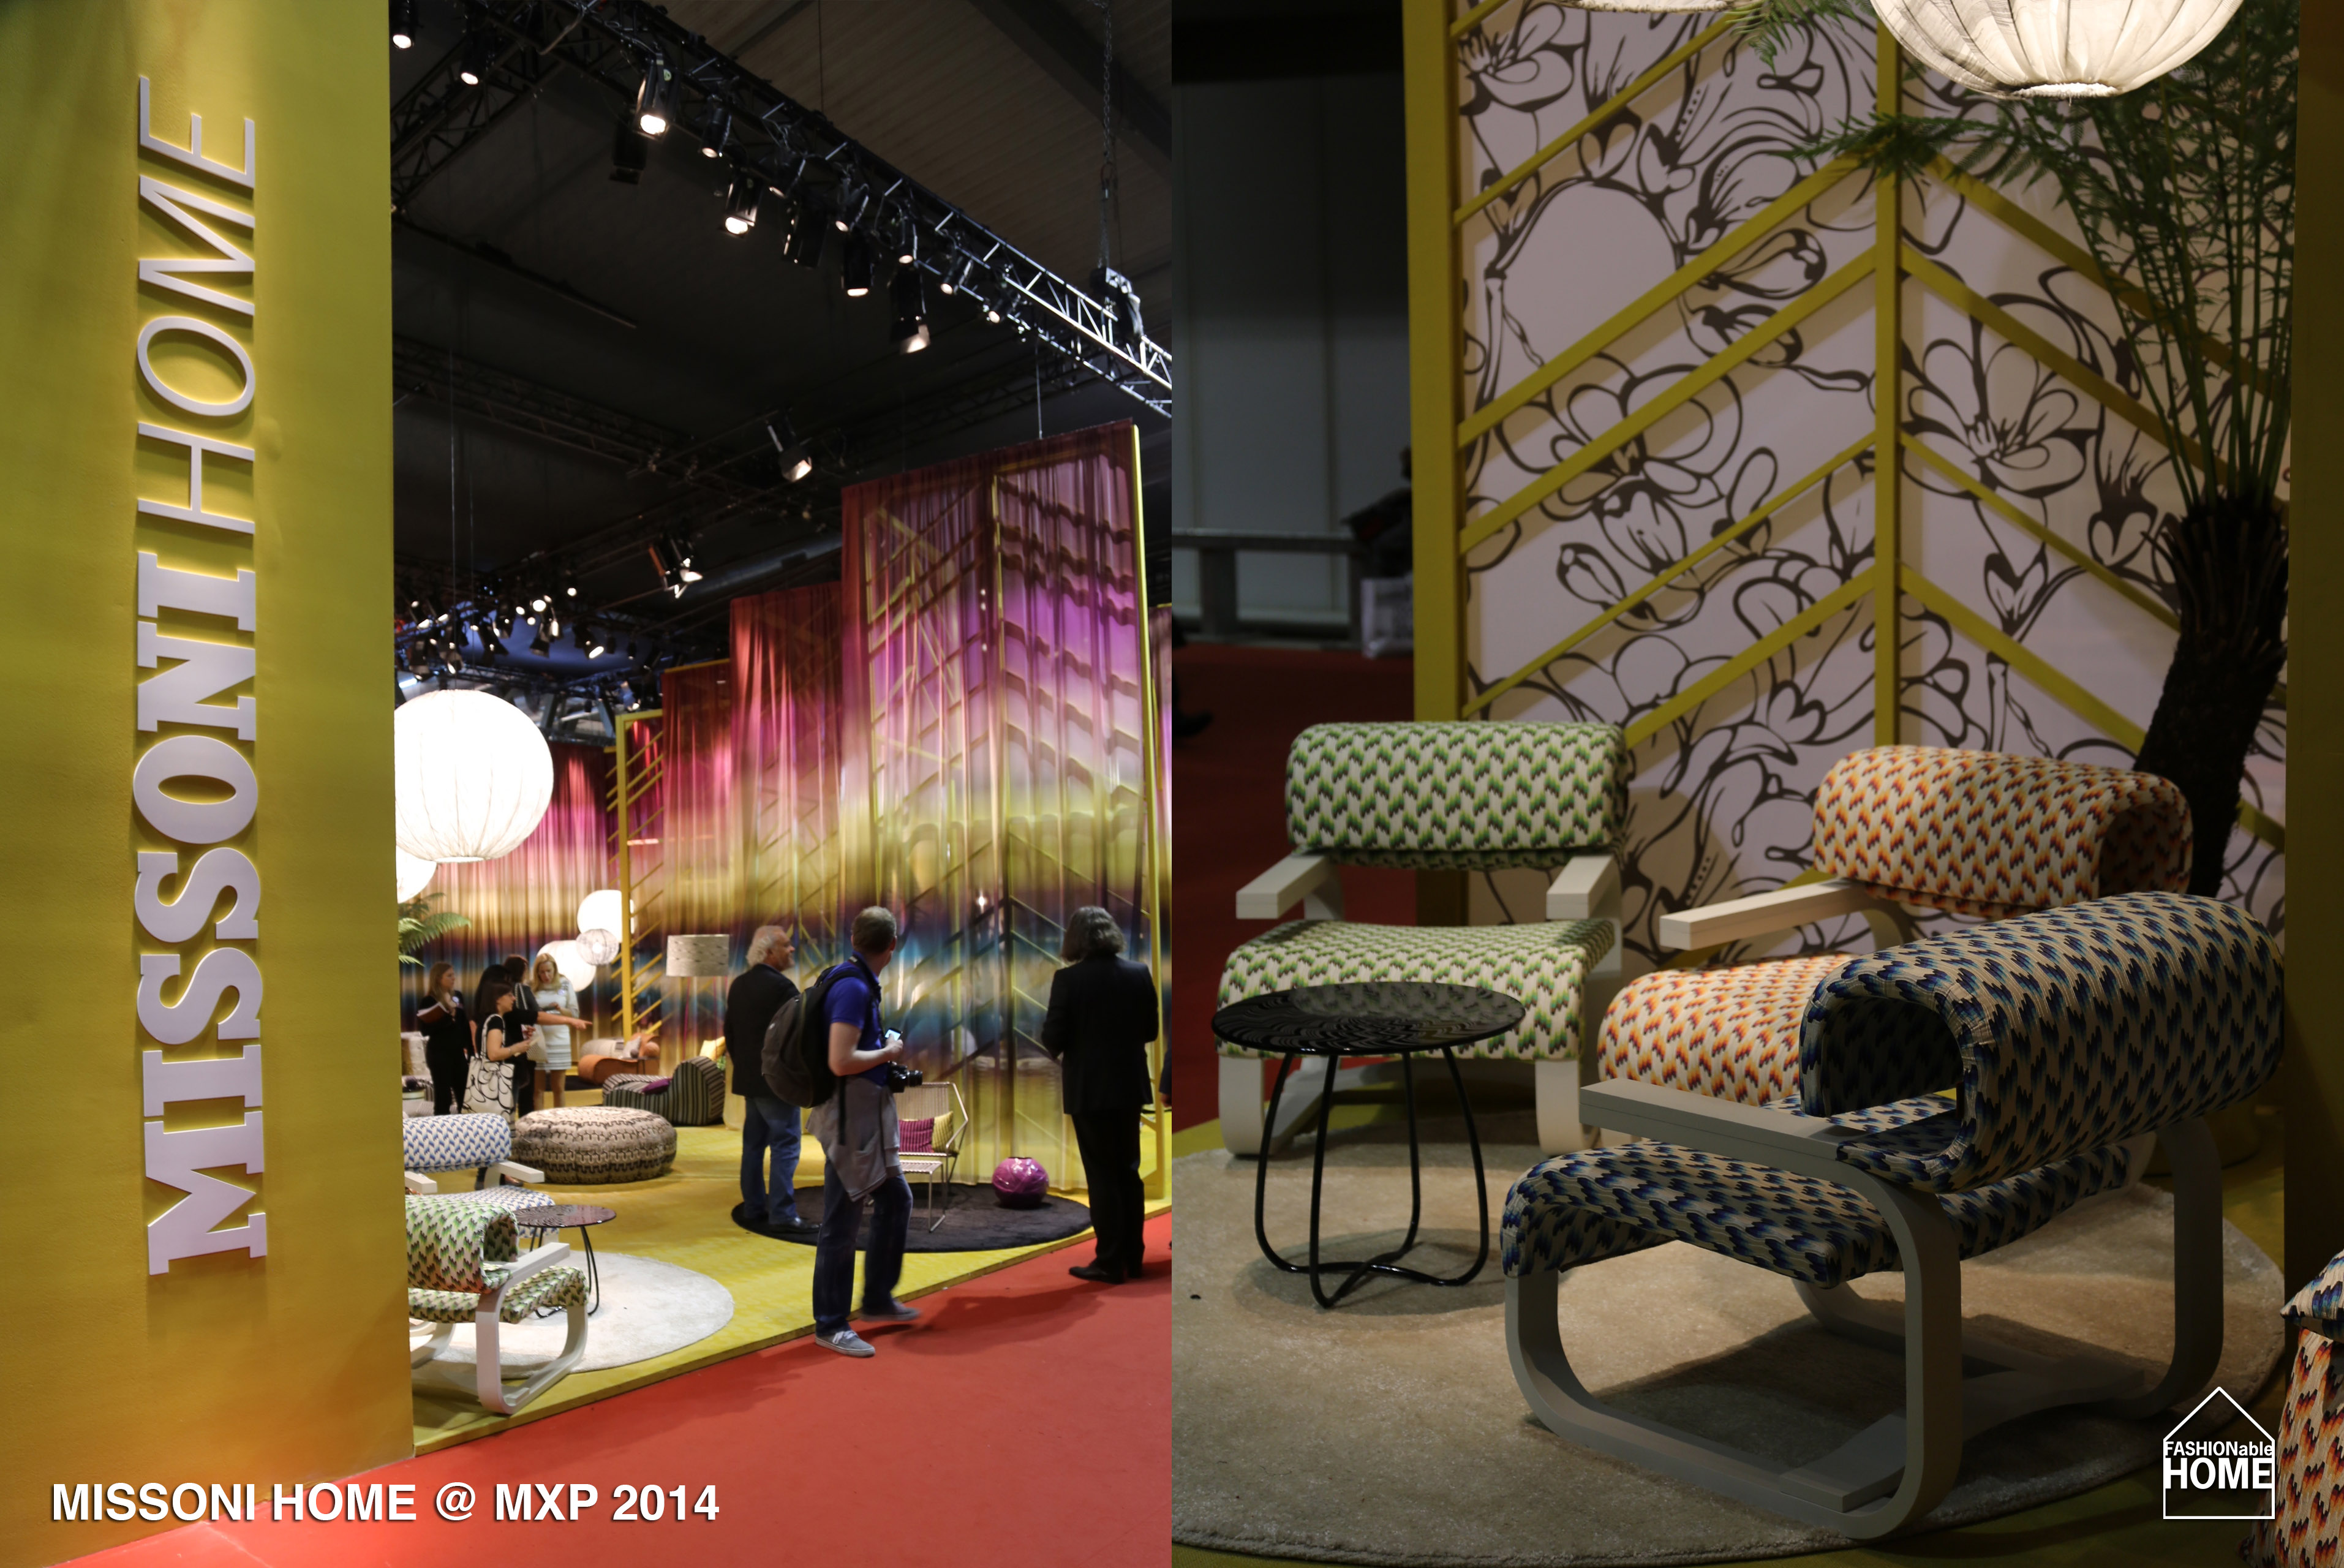 missoni home salone del mobile milano 2014 On missoni home milano